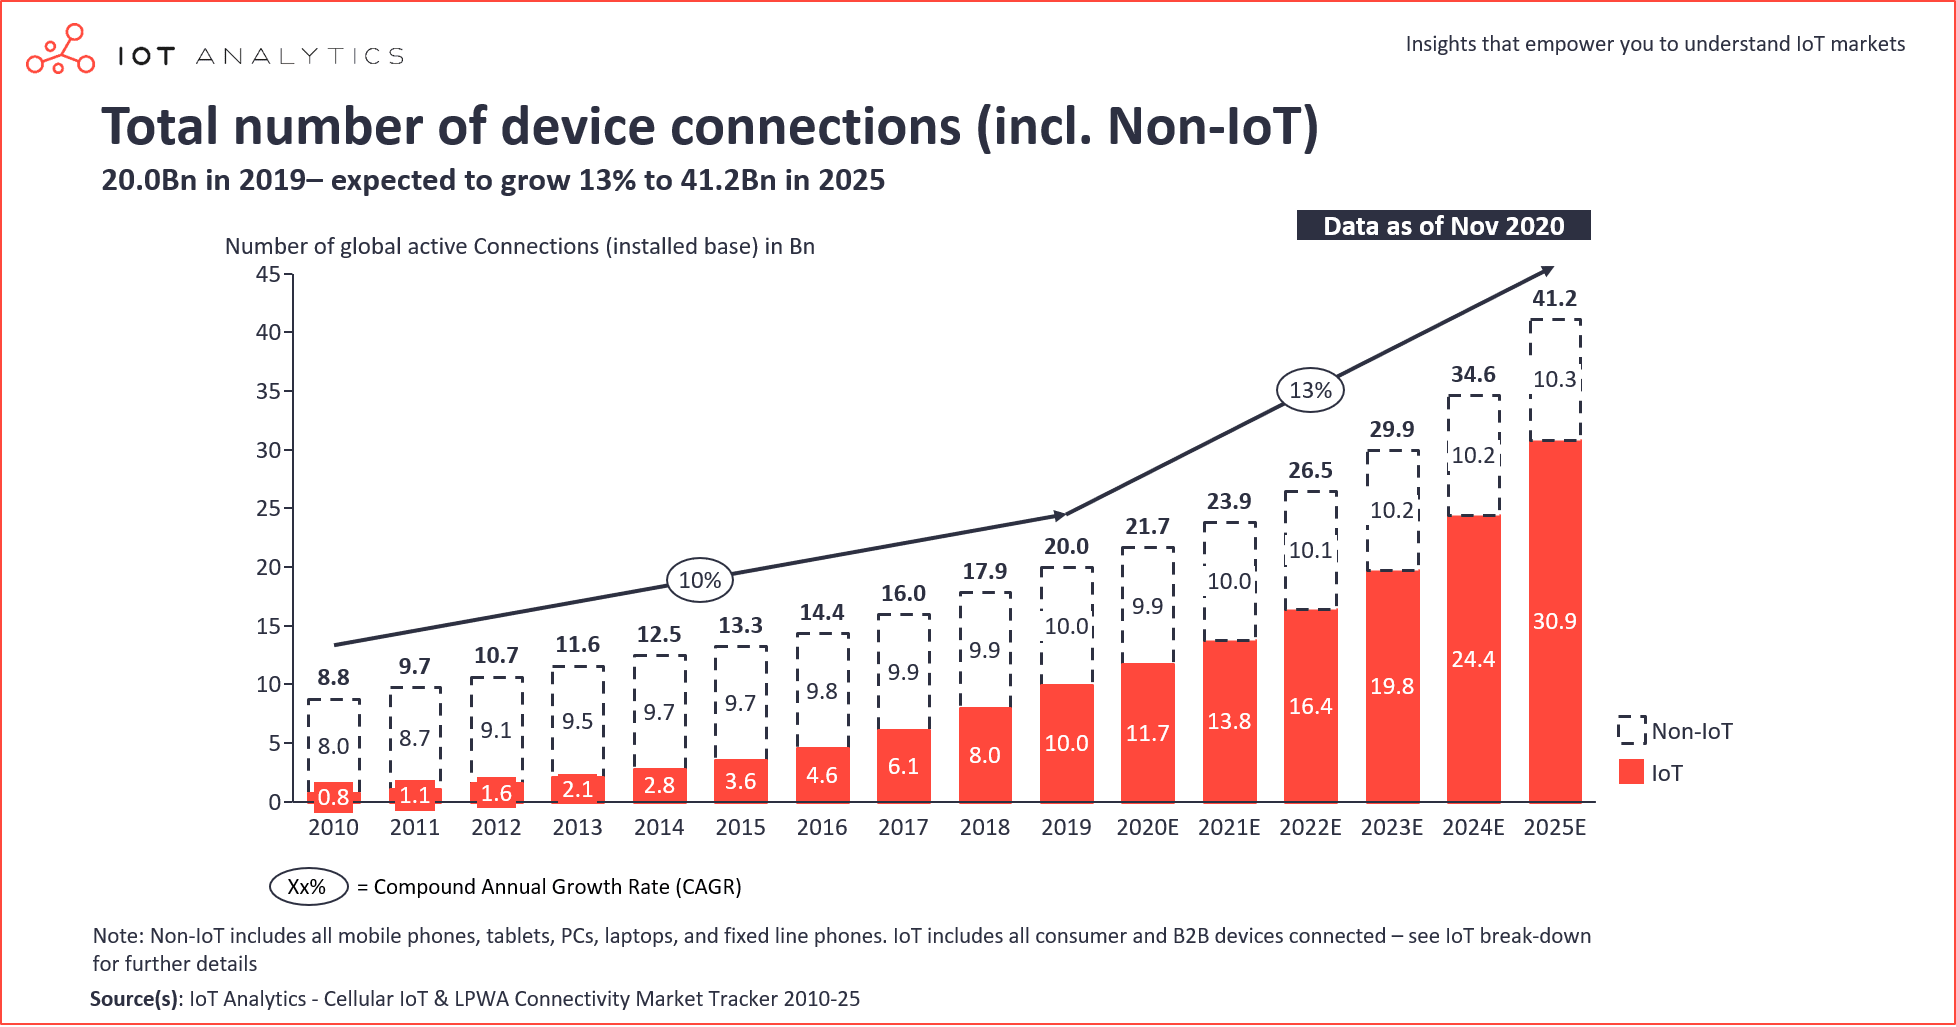 IoT connections - total number of device connections